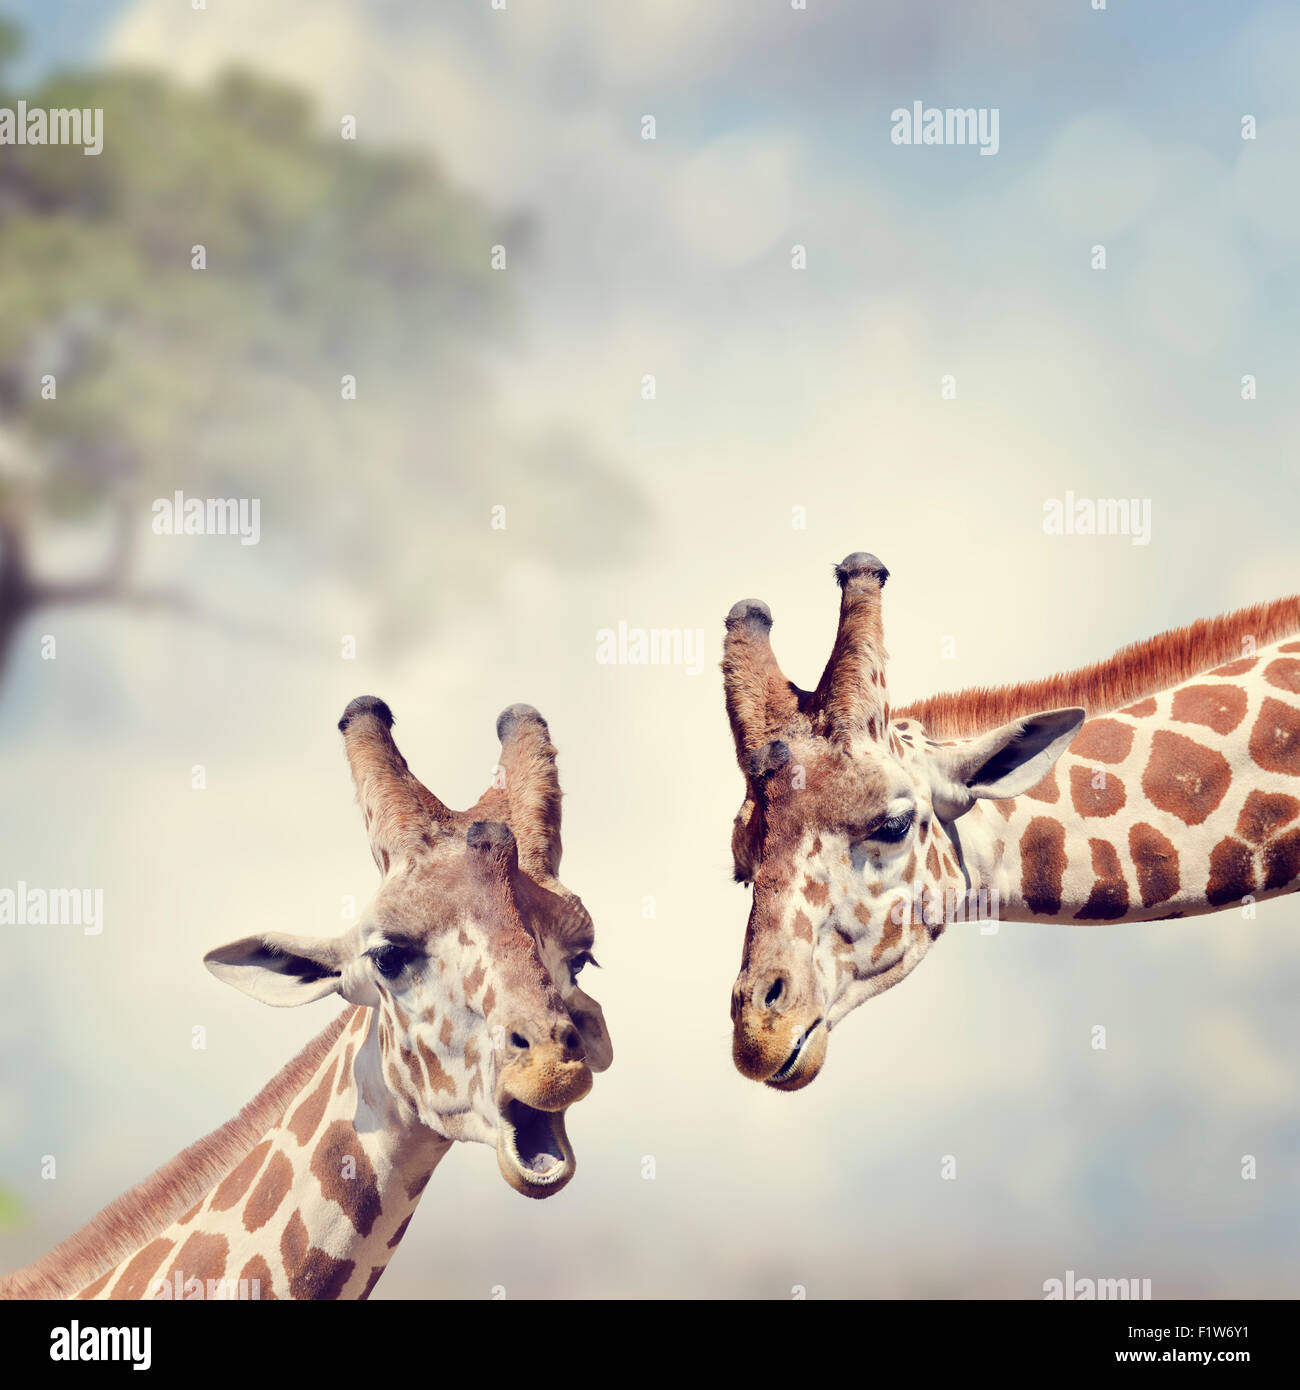 Picture of Two Adult Giraffes - Stock Image